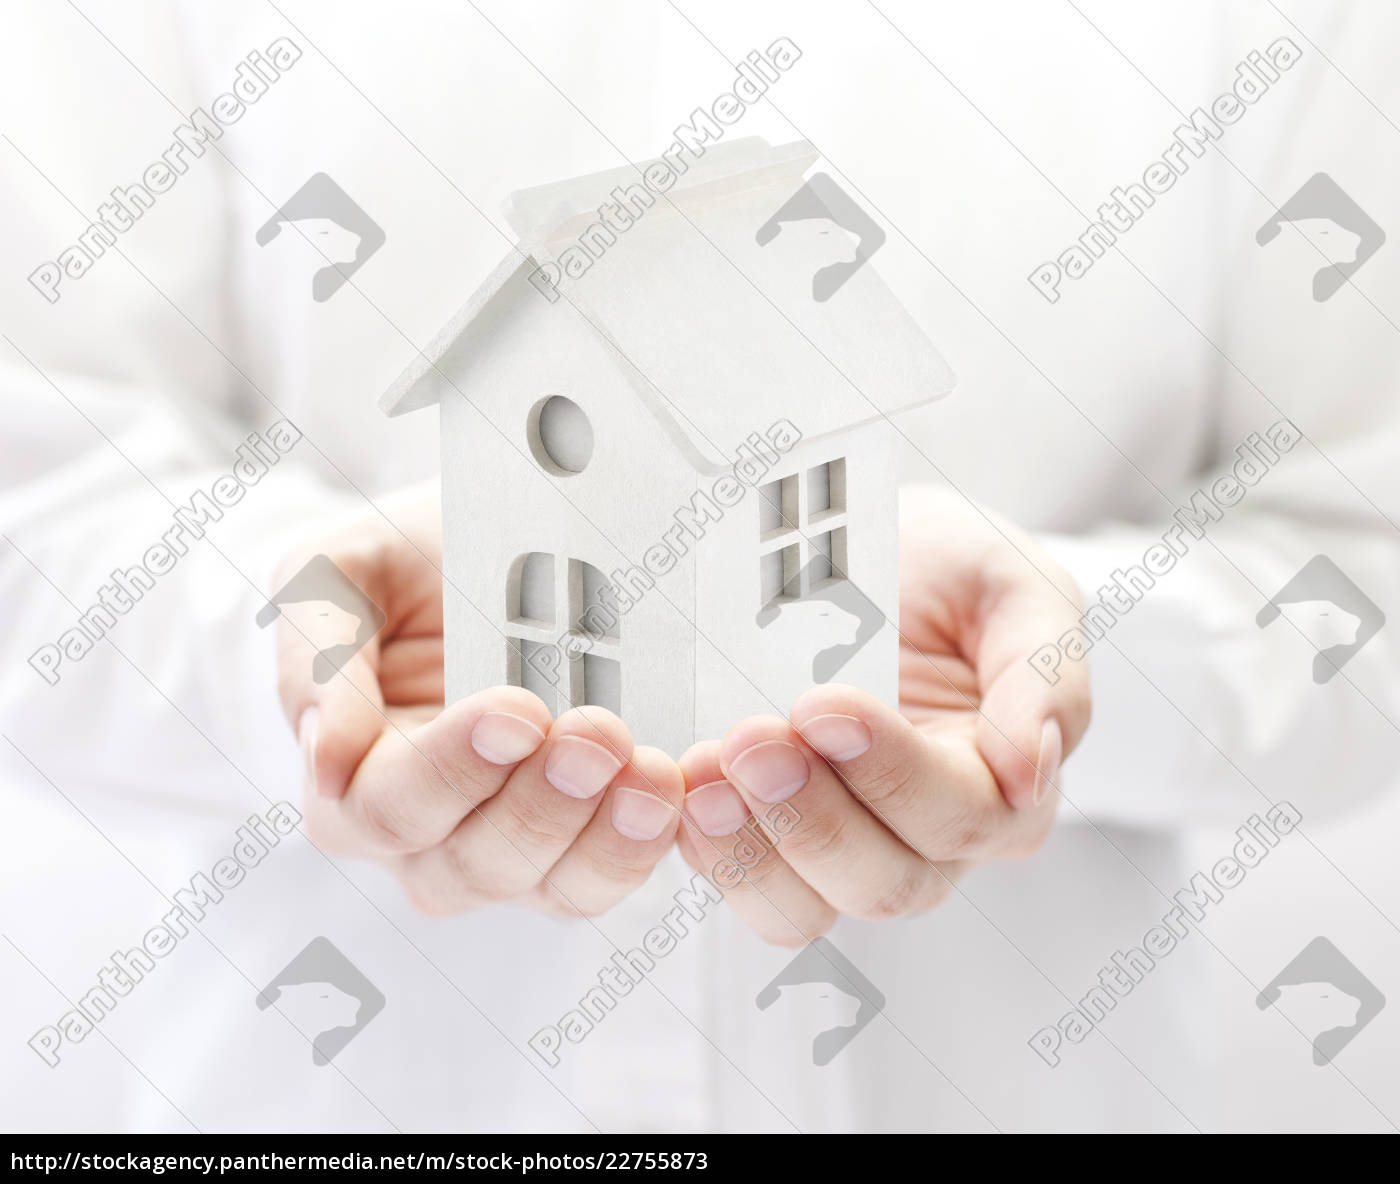 small, white, toy, house, in, hands - 22755873